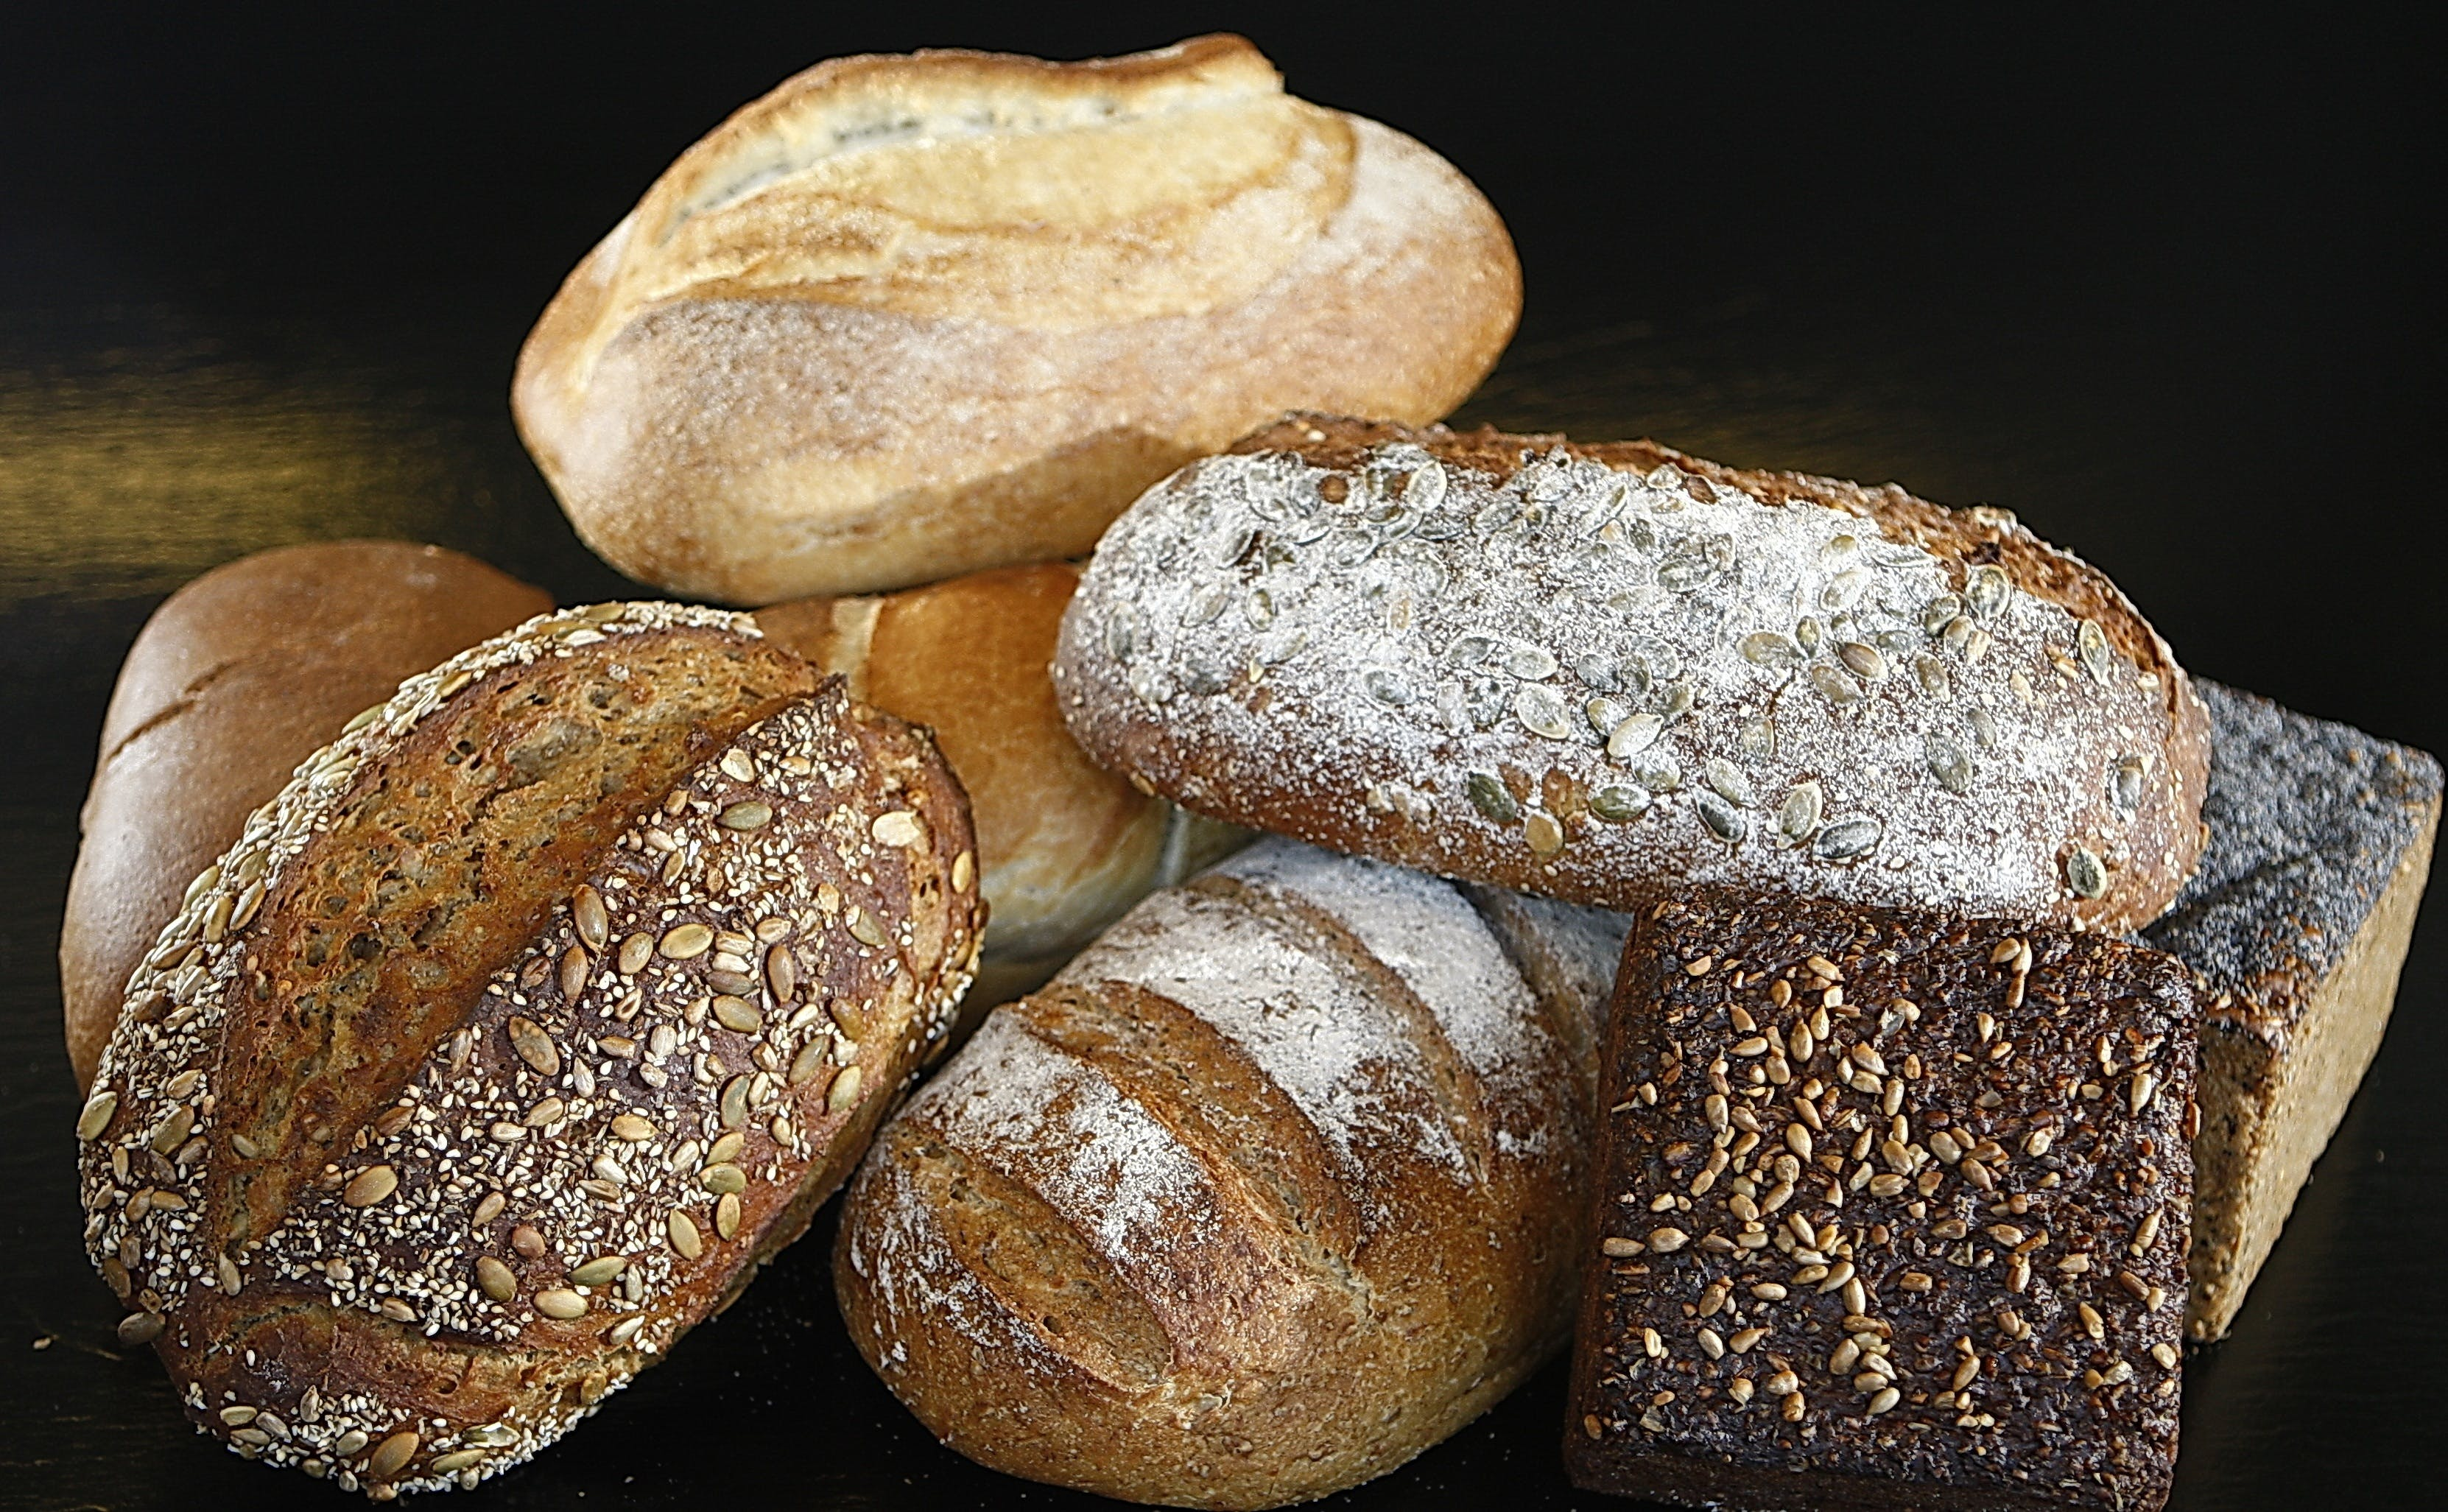 Several Brown Breads